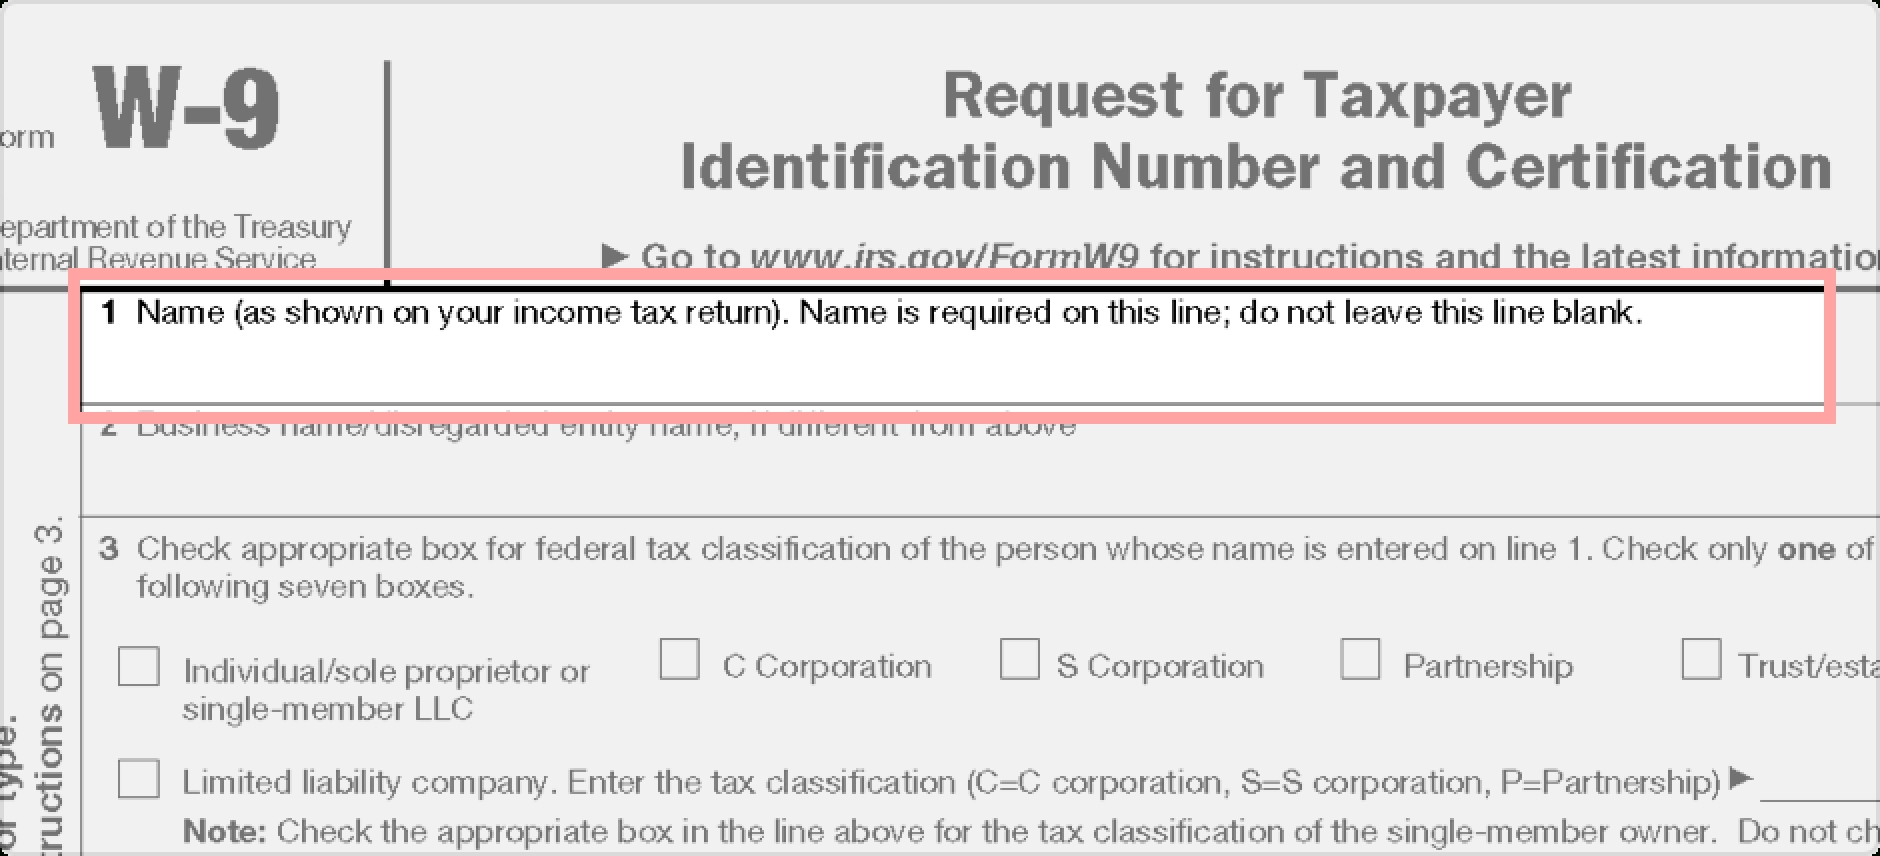 W-9 Form: Fillable, Printable, Download Free. 2019 Instructions-2020 W9 Blank Form